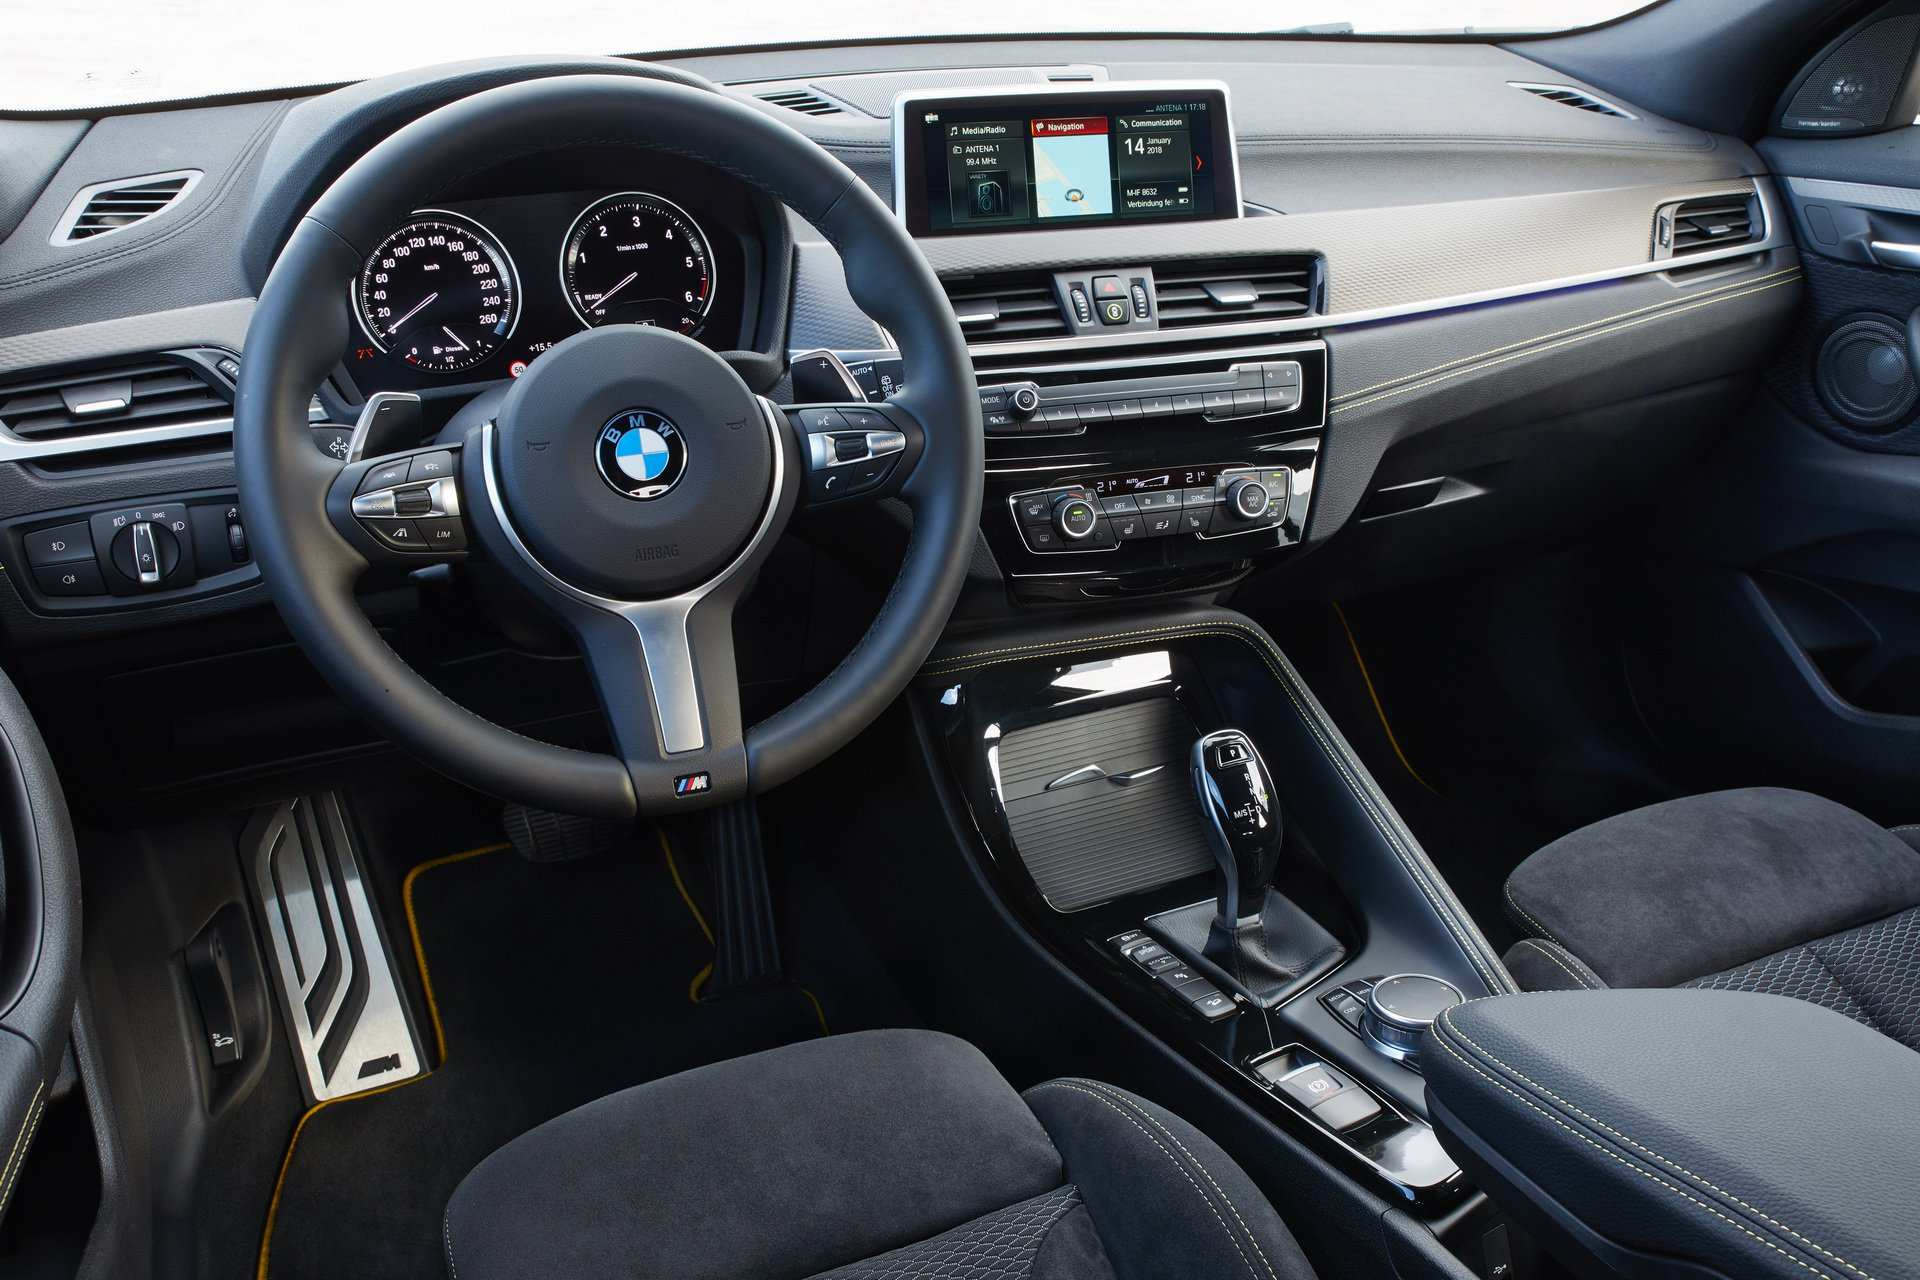 52 Concept of 2019 Bmw 1 Series Interior Exterior and Interior for 2019 Bmw 1 Series Interior